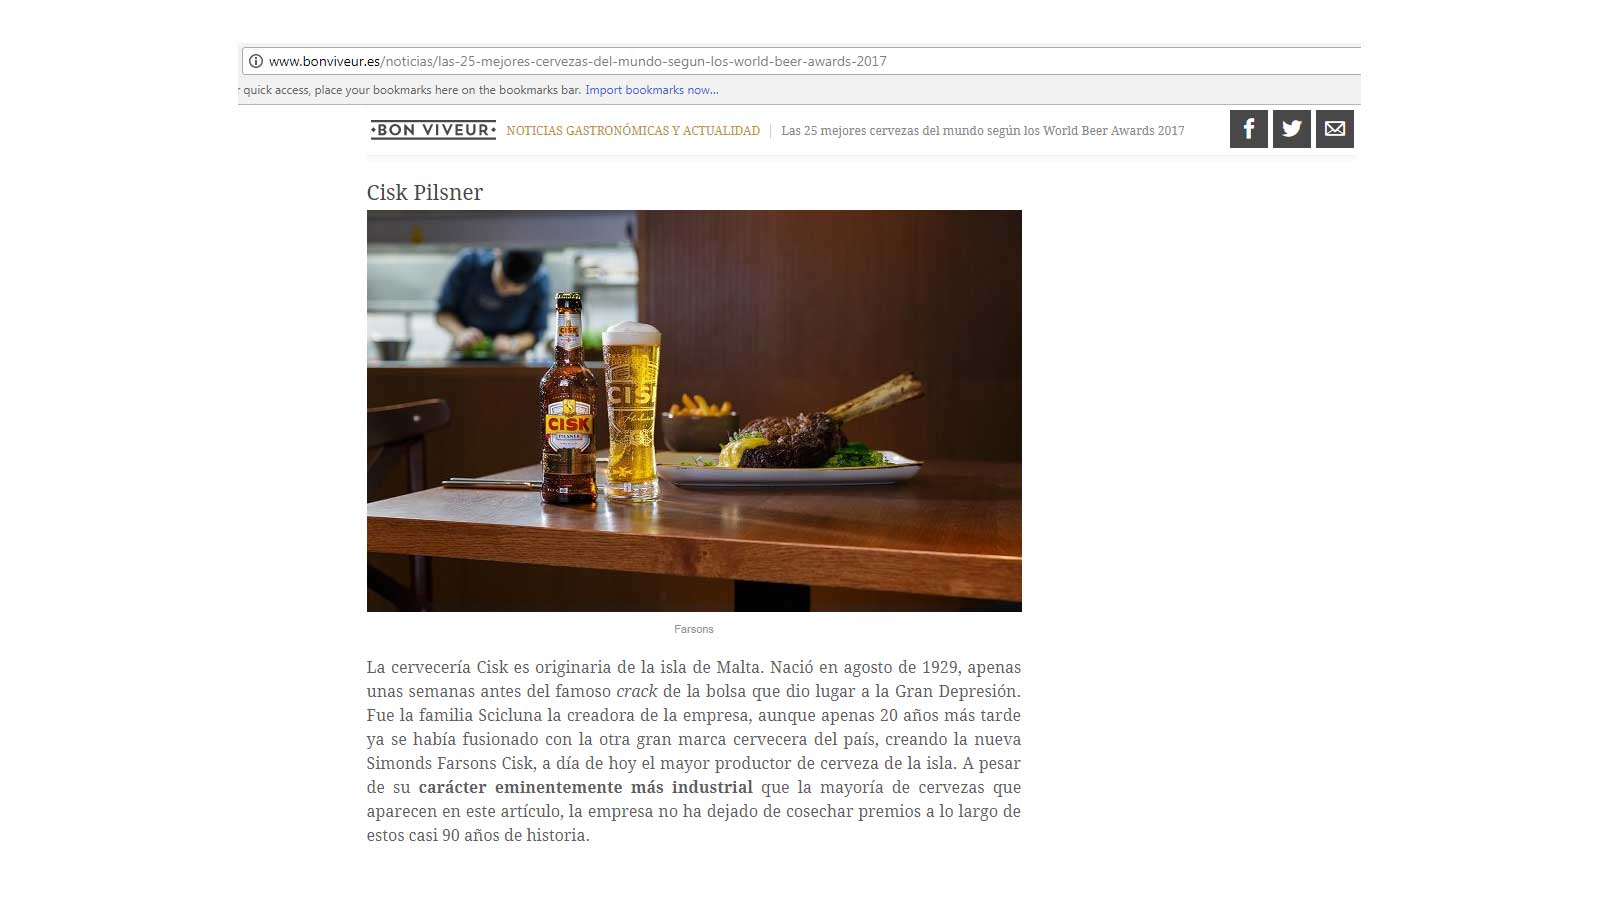 Cisk Pilsner featured on Spanish list of 'Best beers in the world'